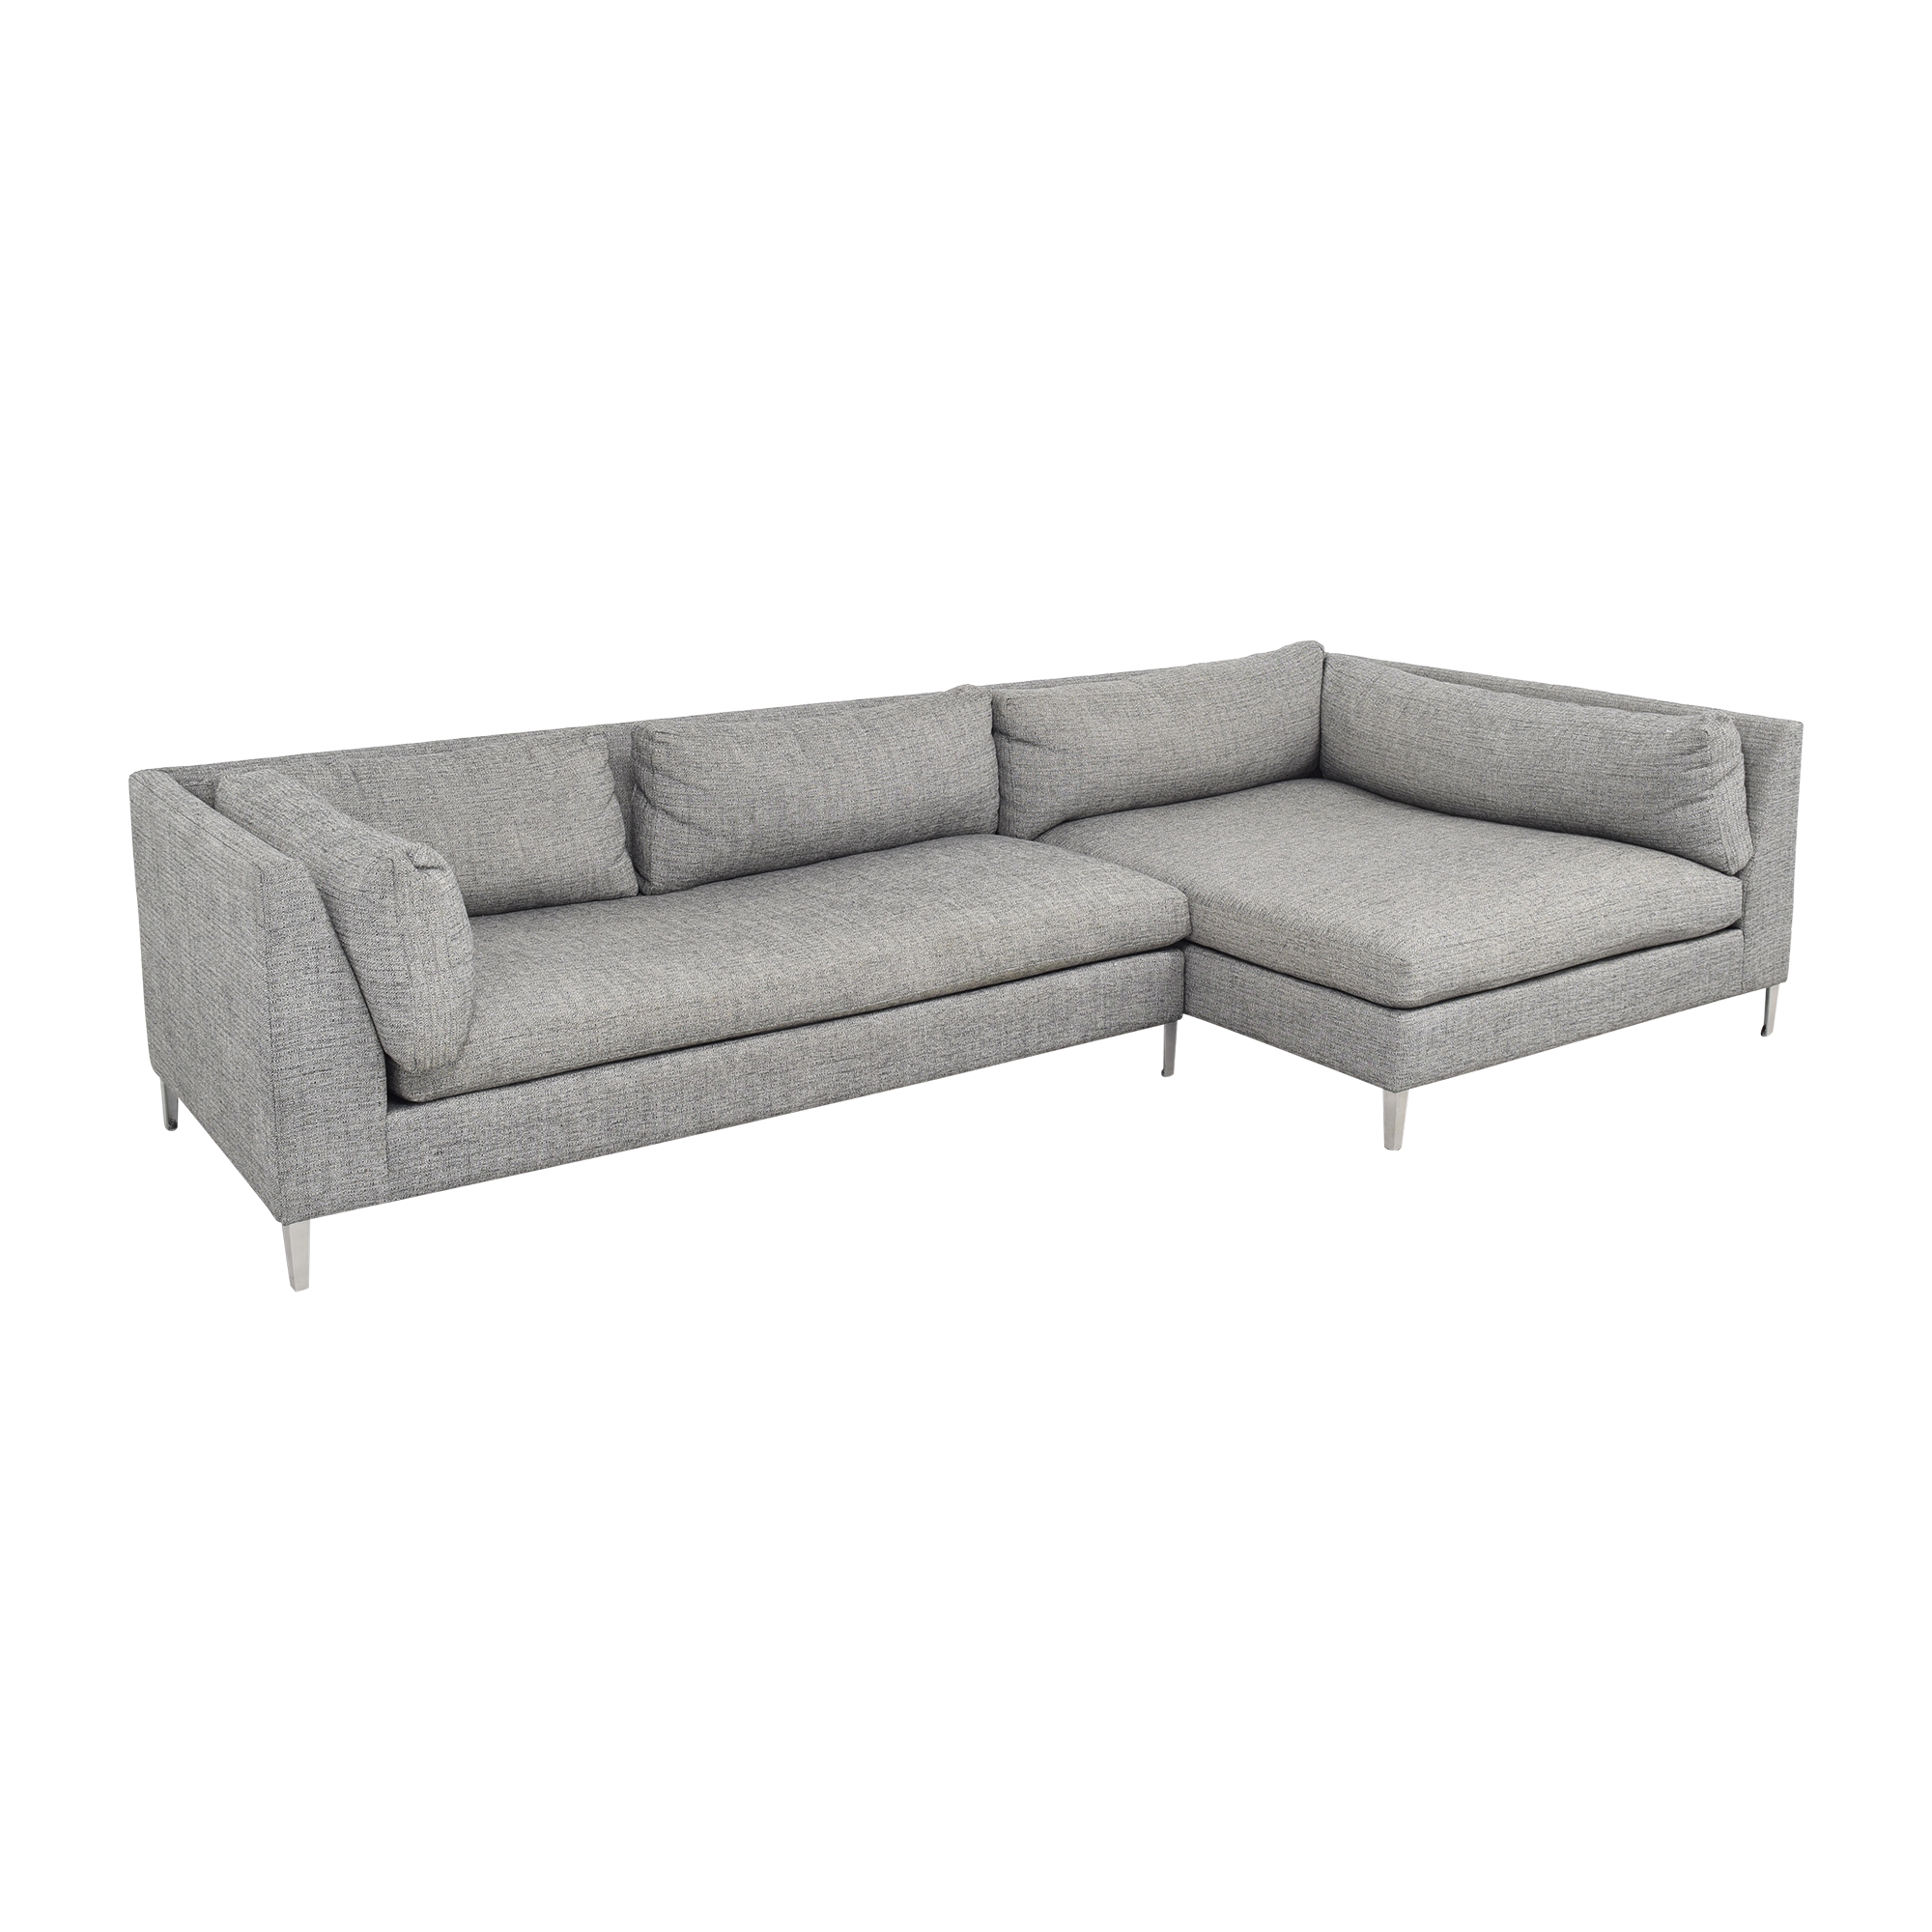 CB2 CB2 Decker Two- Piece Sectional Sofa second hand